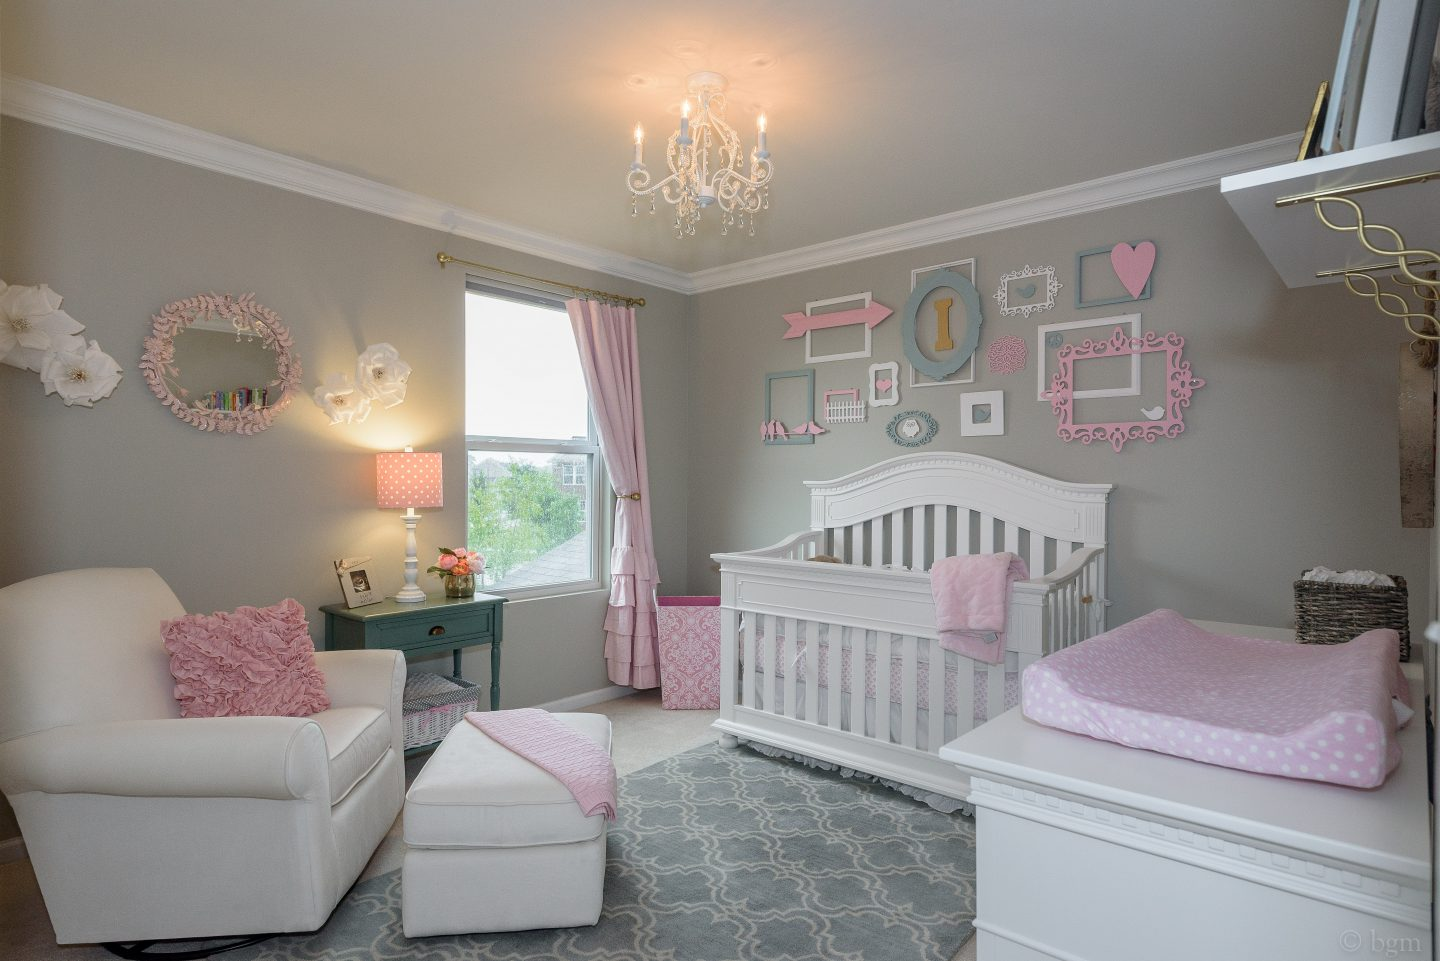 nursery with bedroom for and wallpaper end high pearl arts framed room decor baby pink wall chandelier celebrity ceiling